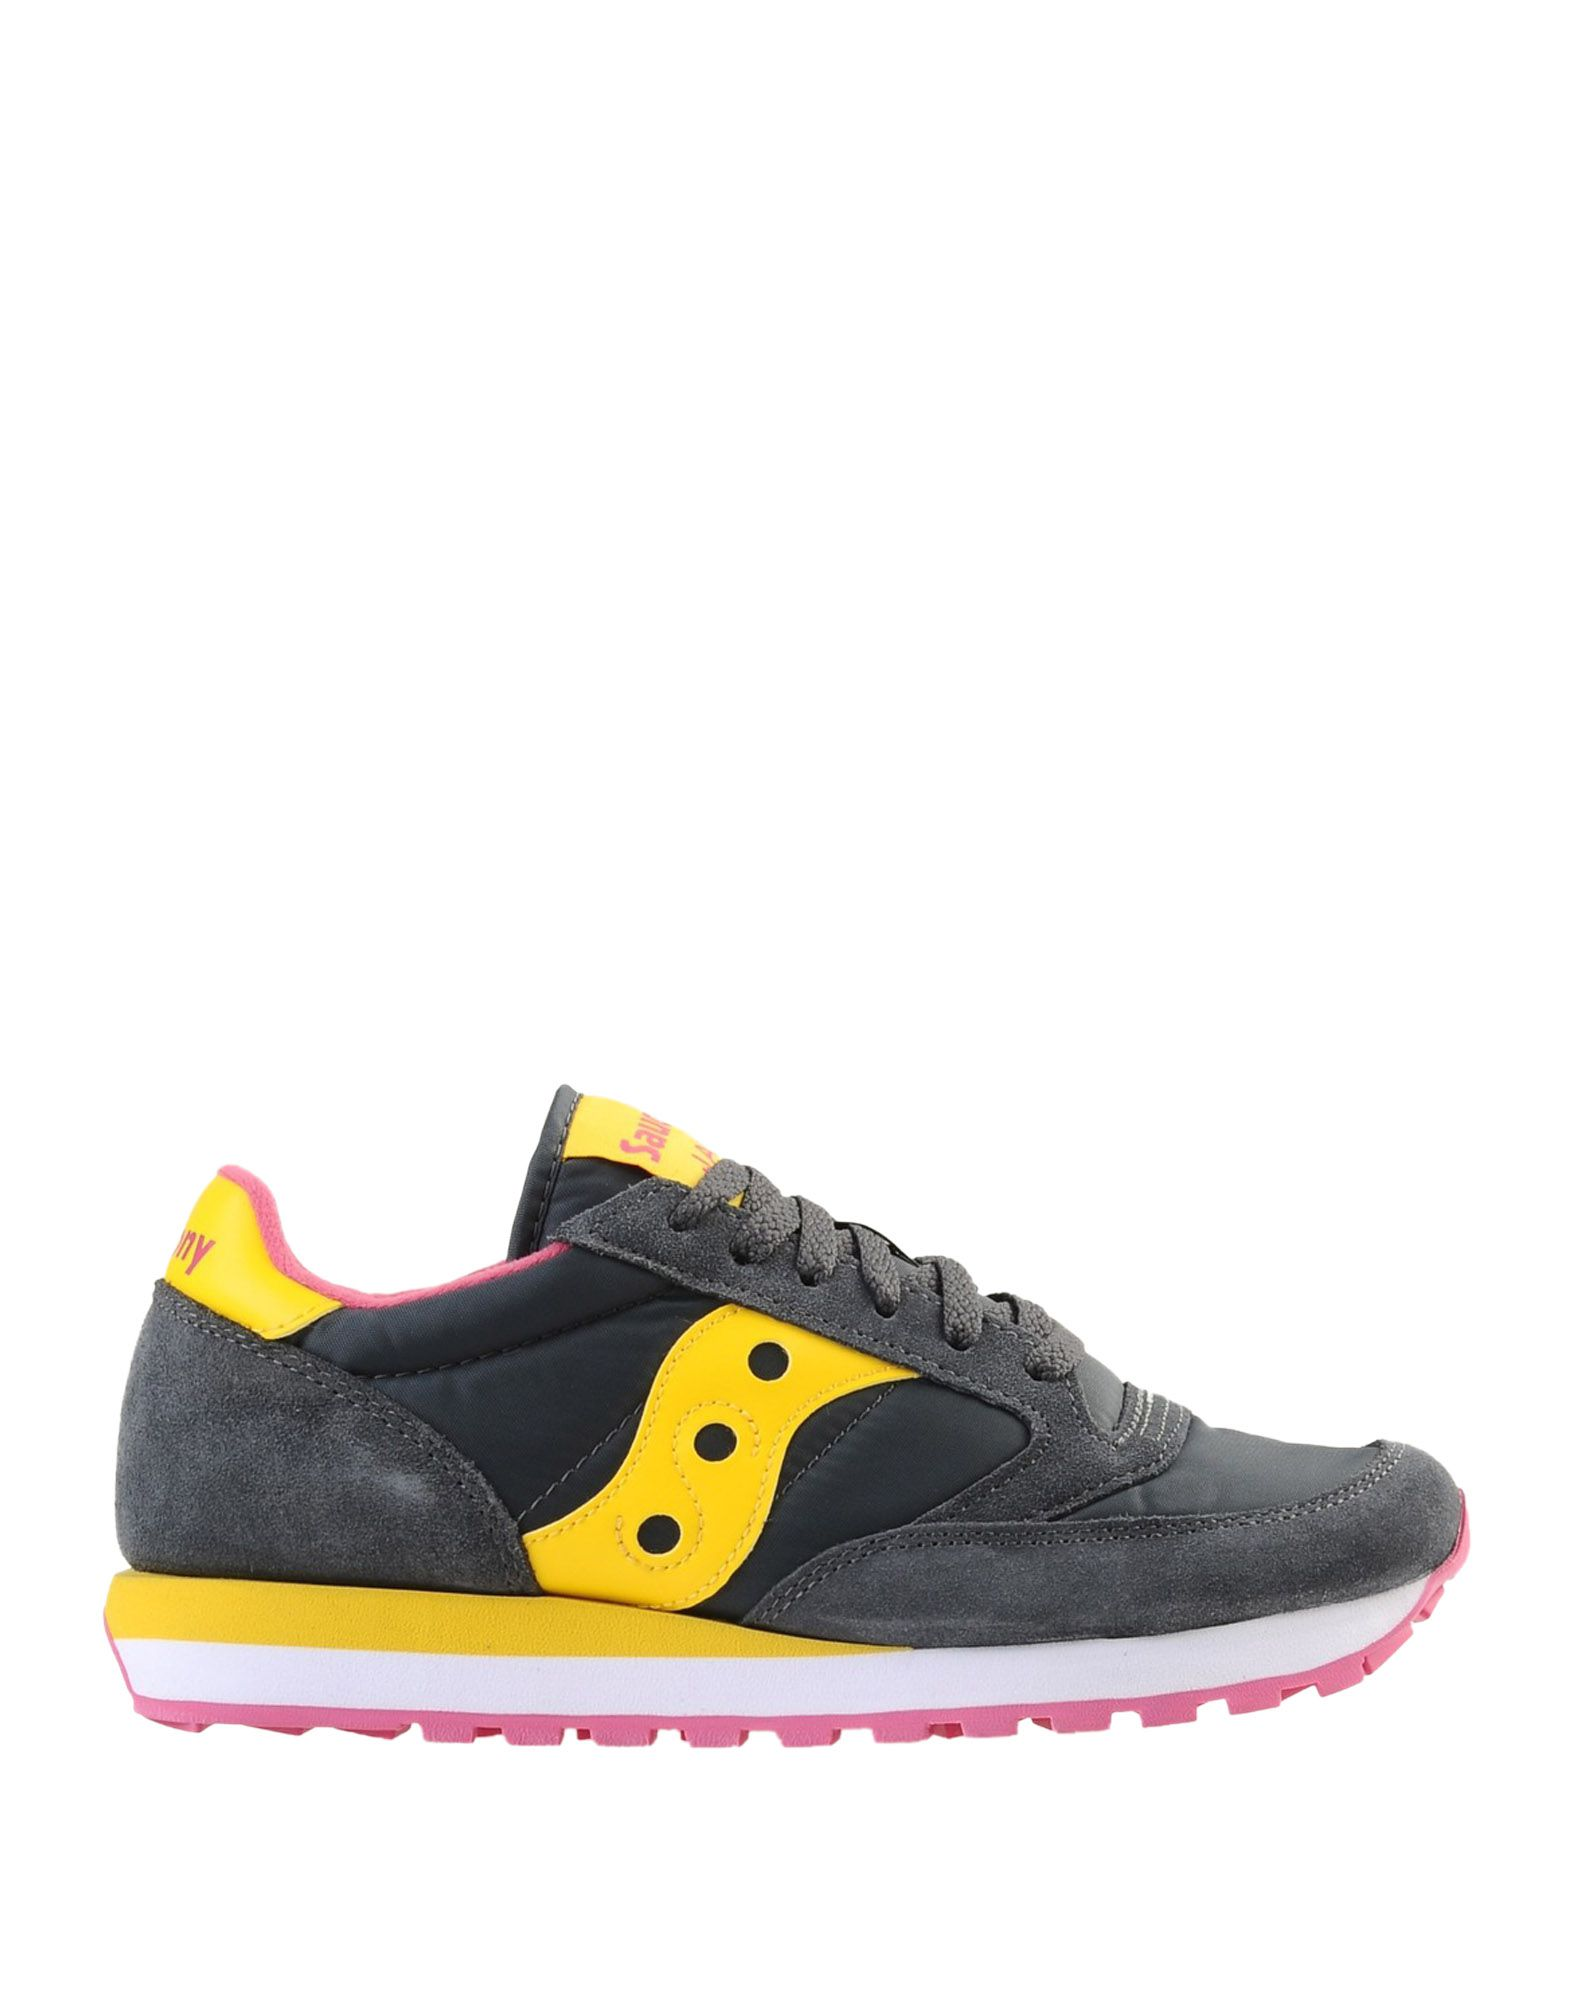 Baskets Saucony Jazz O W - Femme - Baskets Saucony Plomb Confortable et belle